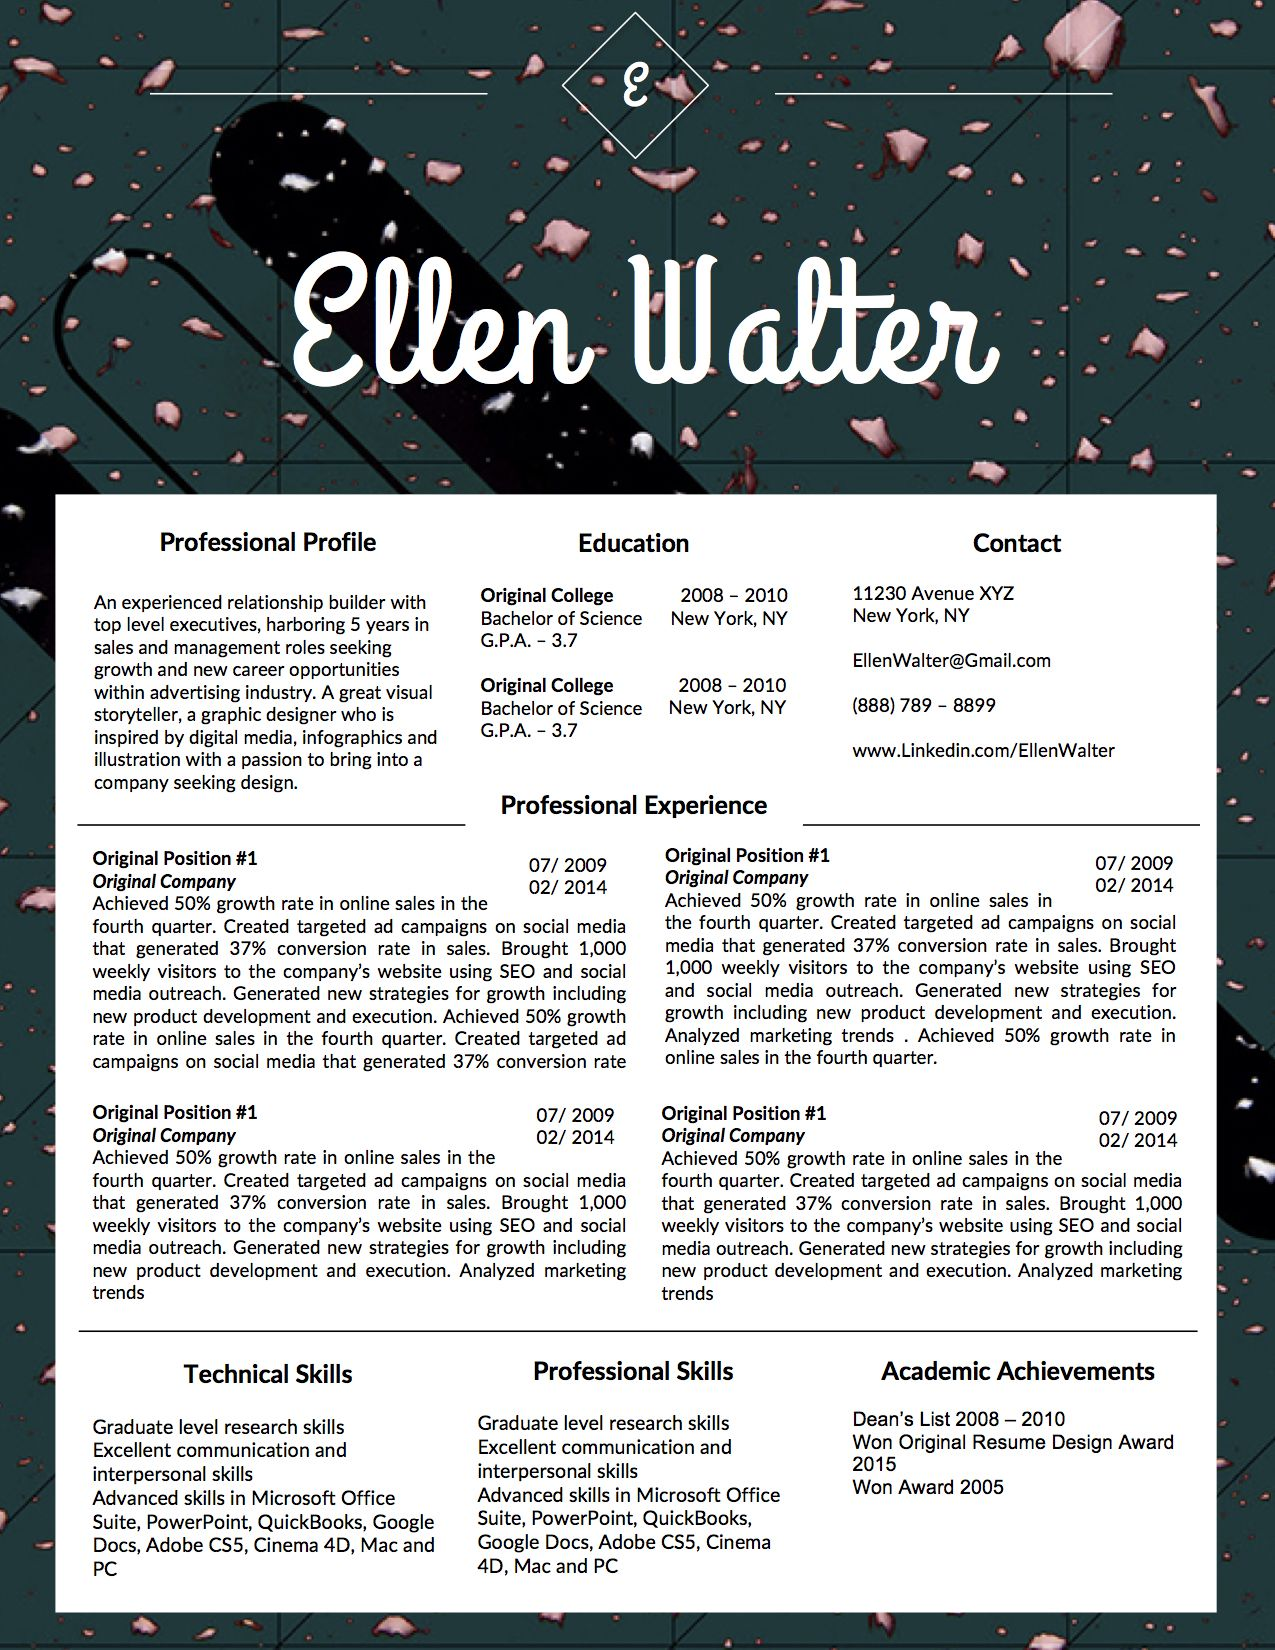 Beautiful Resume Template For Microsoft Word  The Ellen Walter